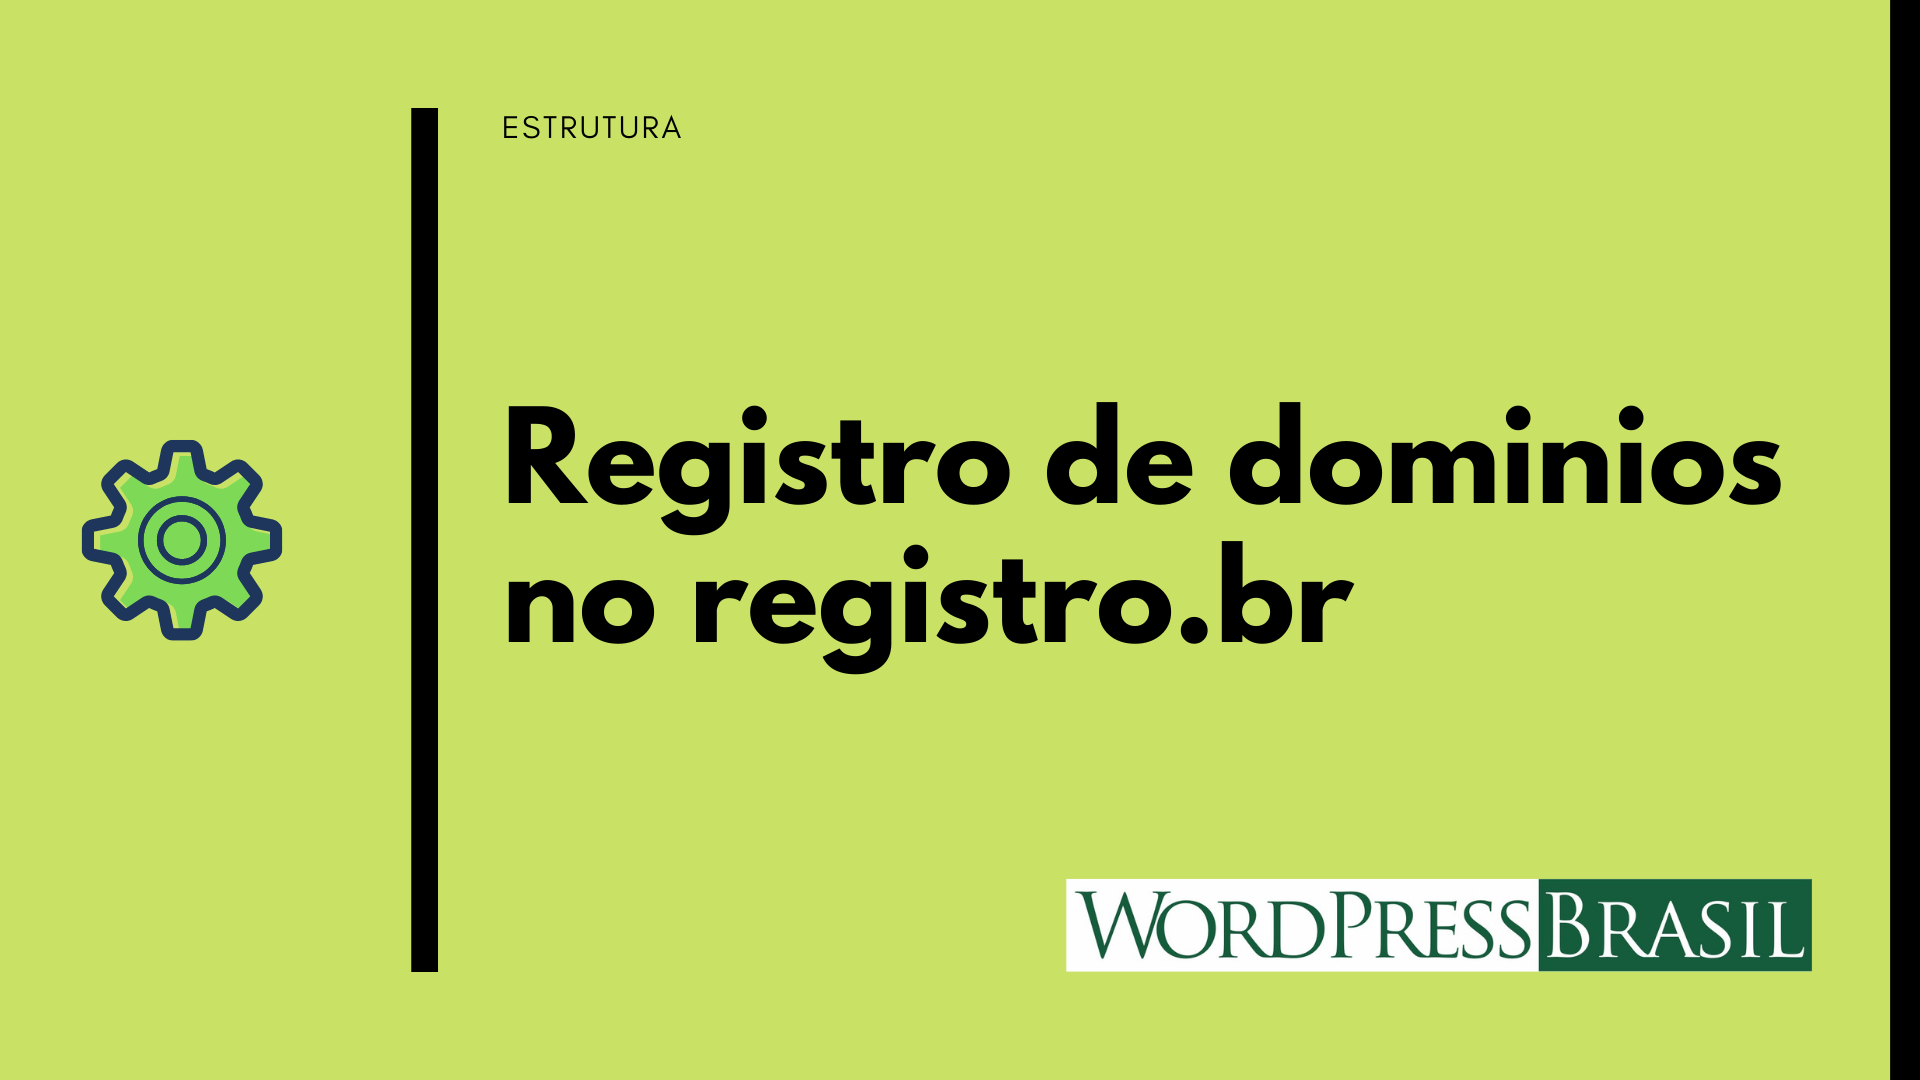 Registrando site WordPress no registro.br